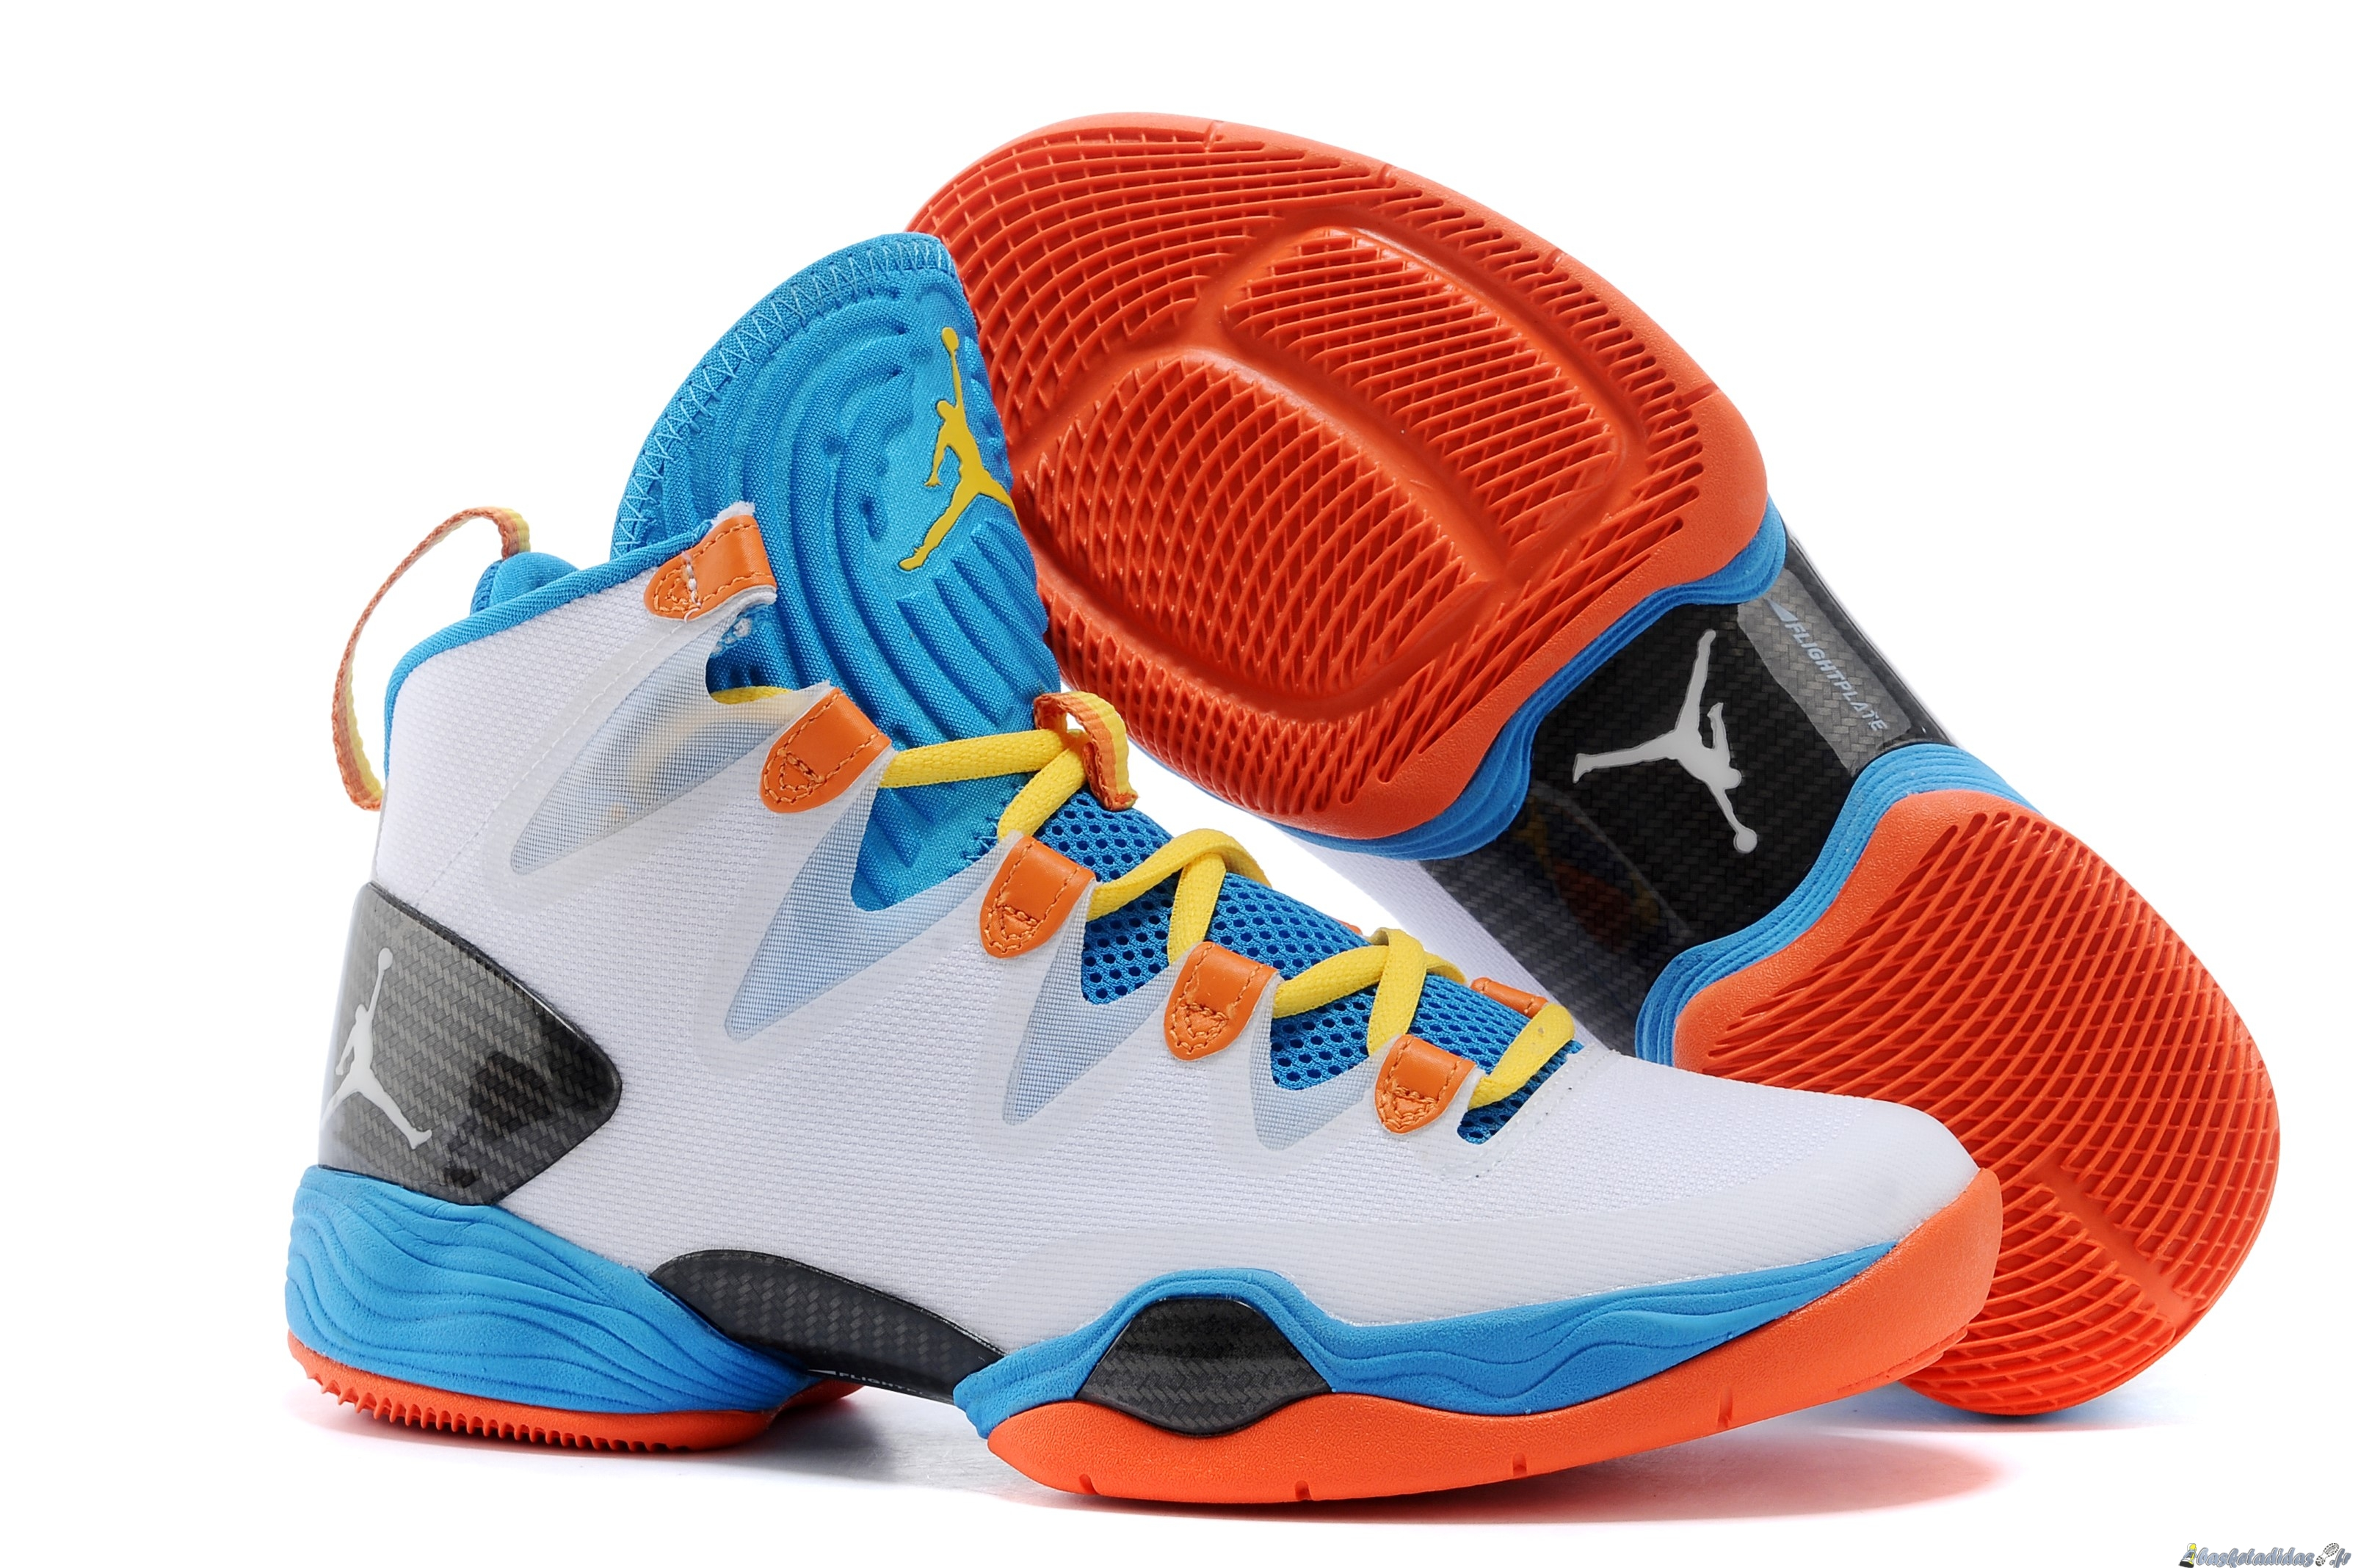 Chaussure de Basket Air Jordan 28 Homme Blanc Bleu Orange